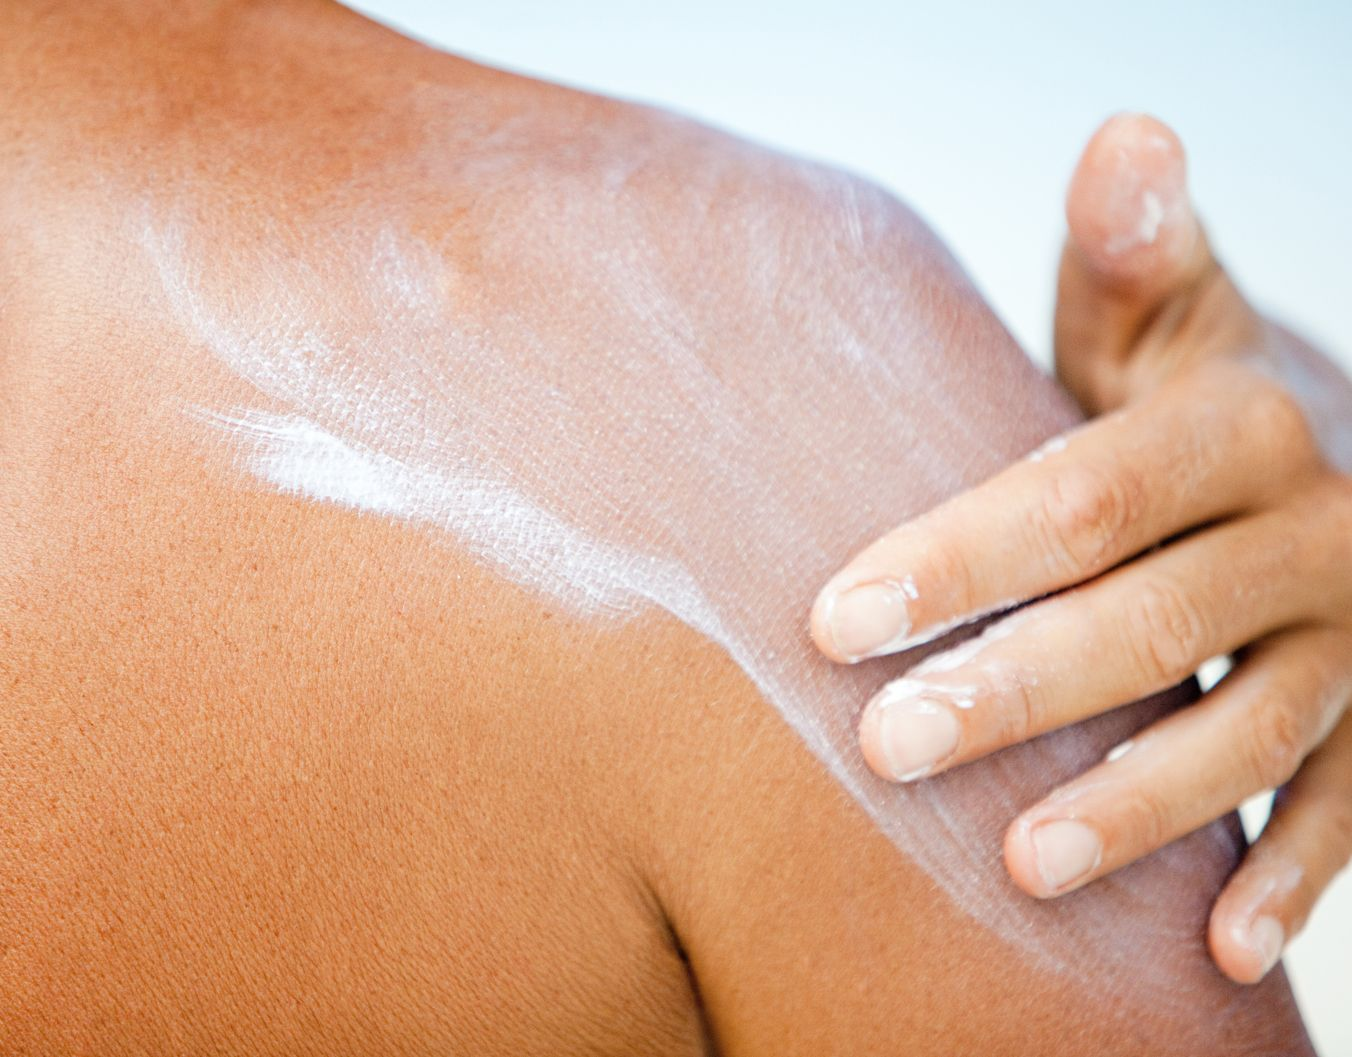 The Best Products For Sunburned And Peeling Skin Peeling Skin Chemical Sunscreen Sunburn Peeling